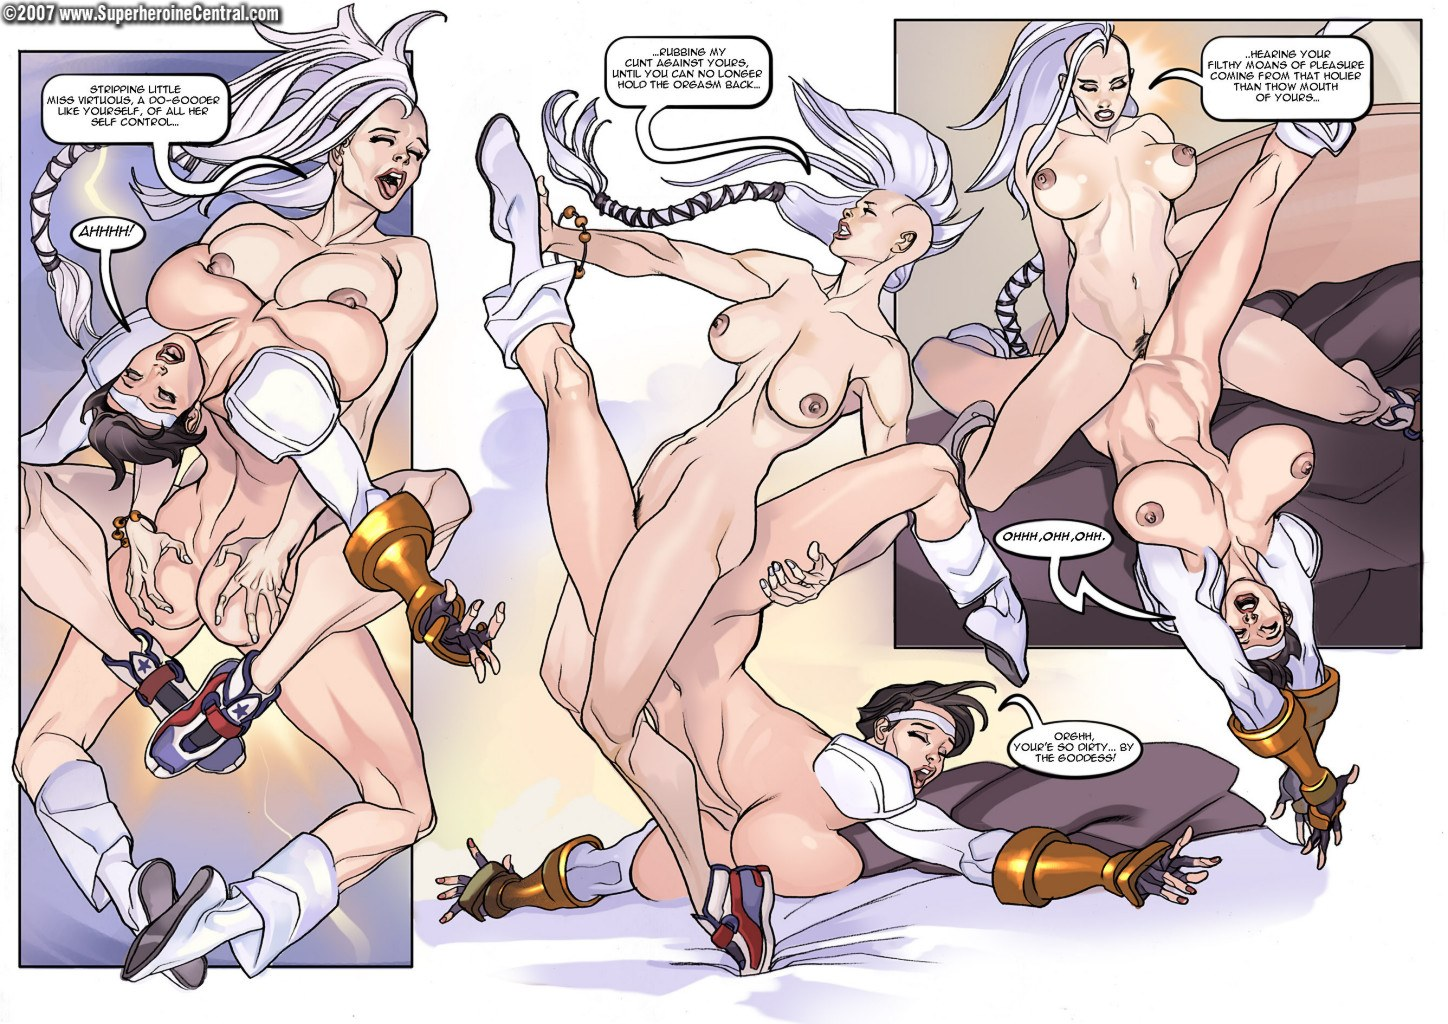 Paladin sex cartoon image